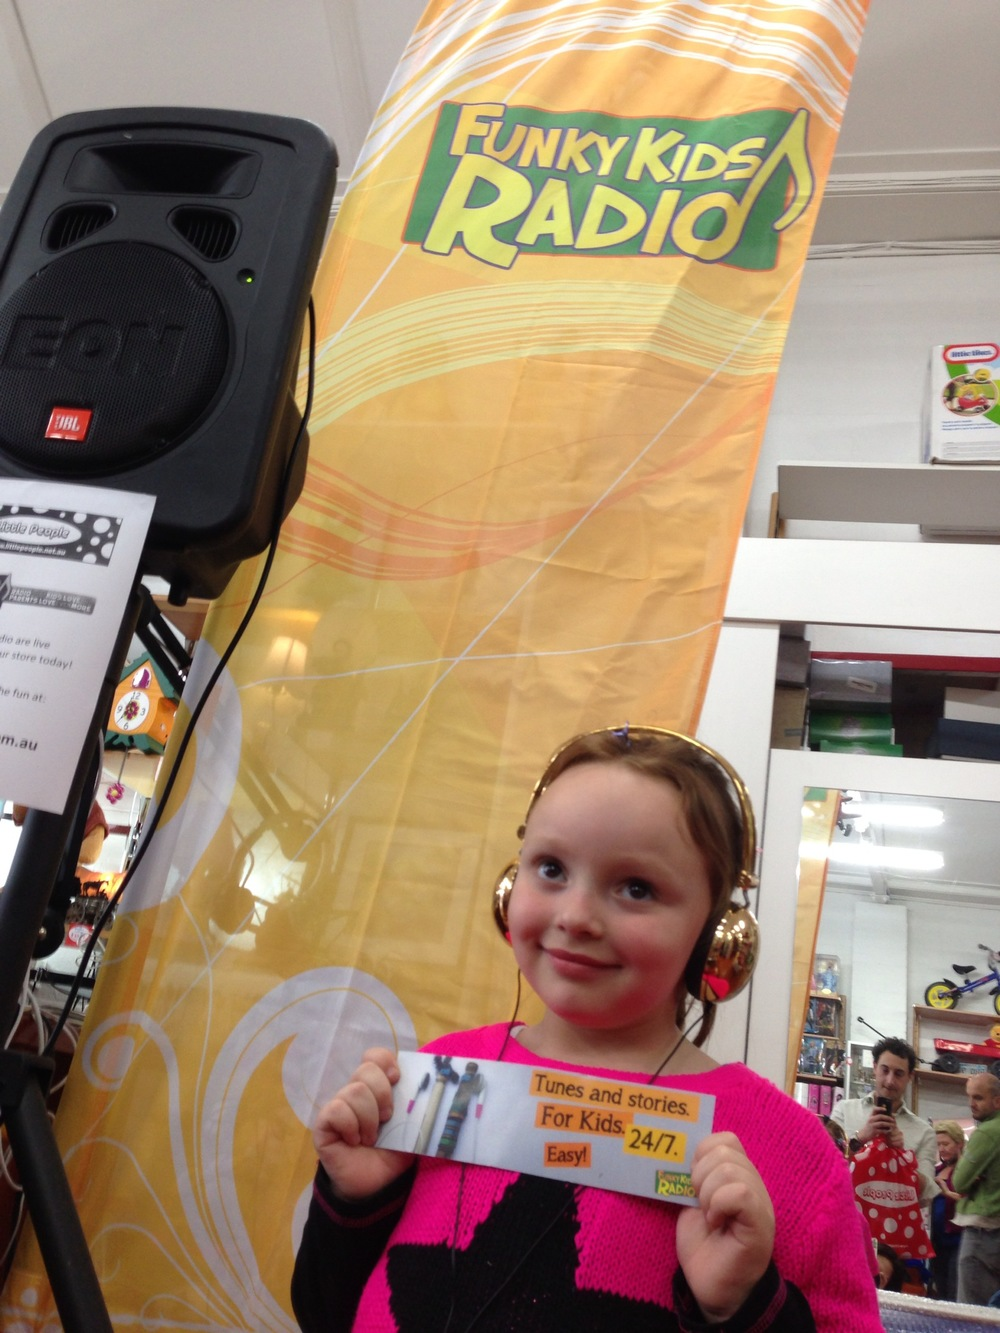 Junior Broadcaster, Charlie, at Little People Live Broadcast, 2013